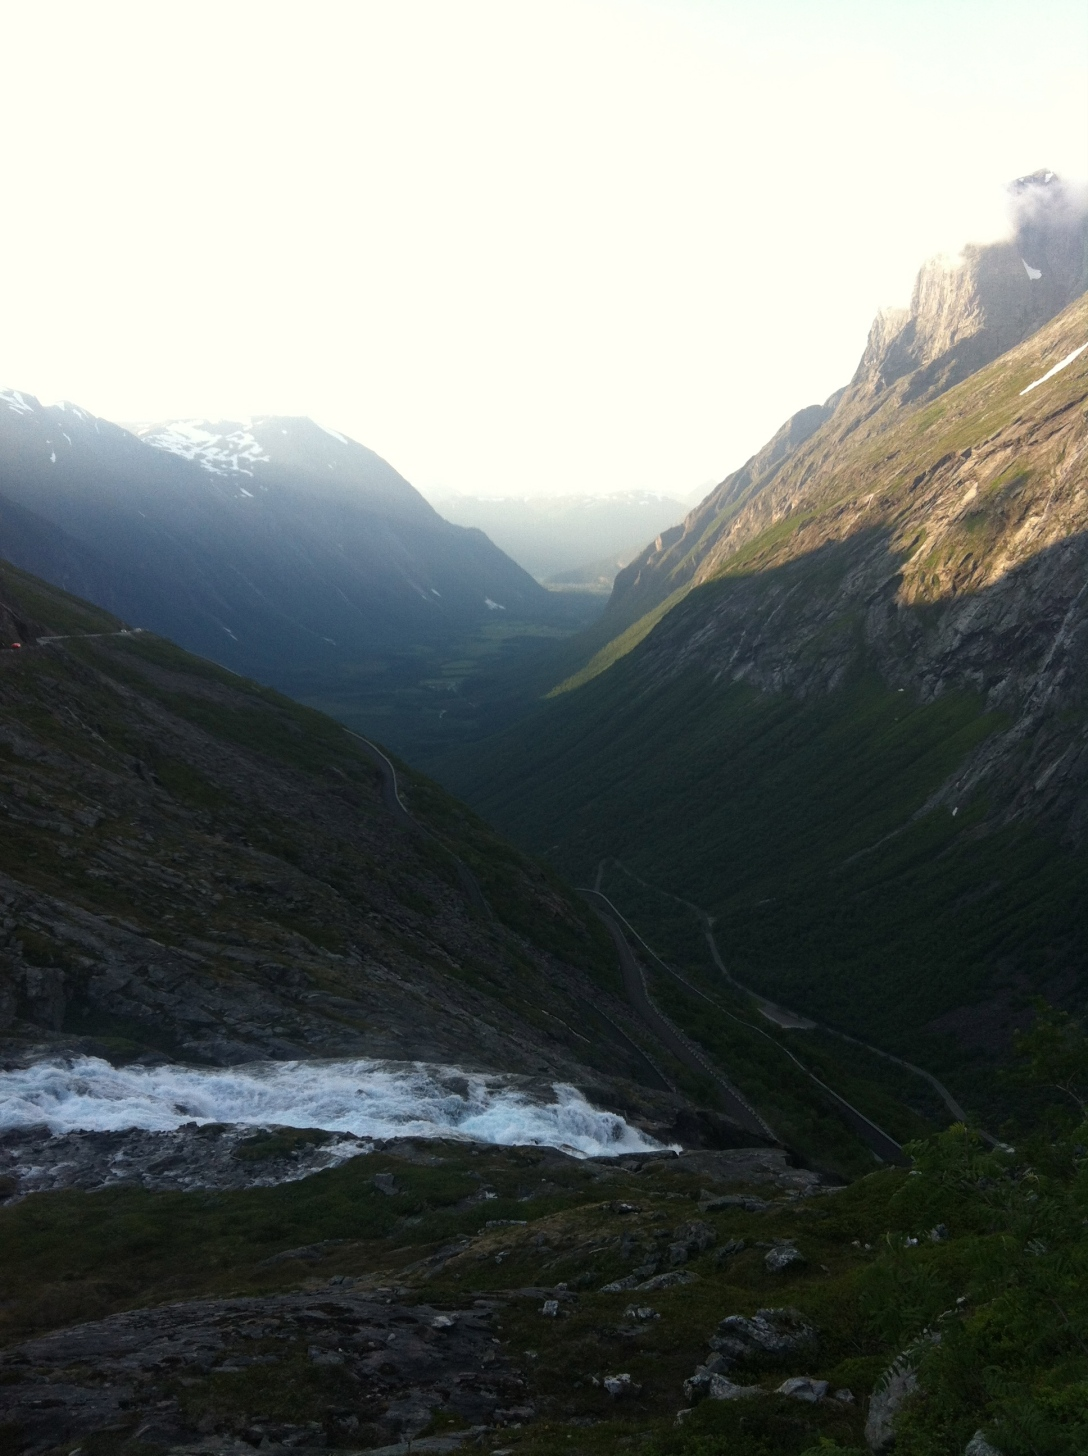 Magnificient view from the top of Trollstigen